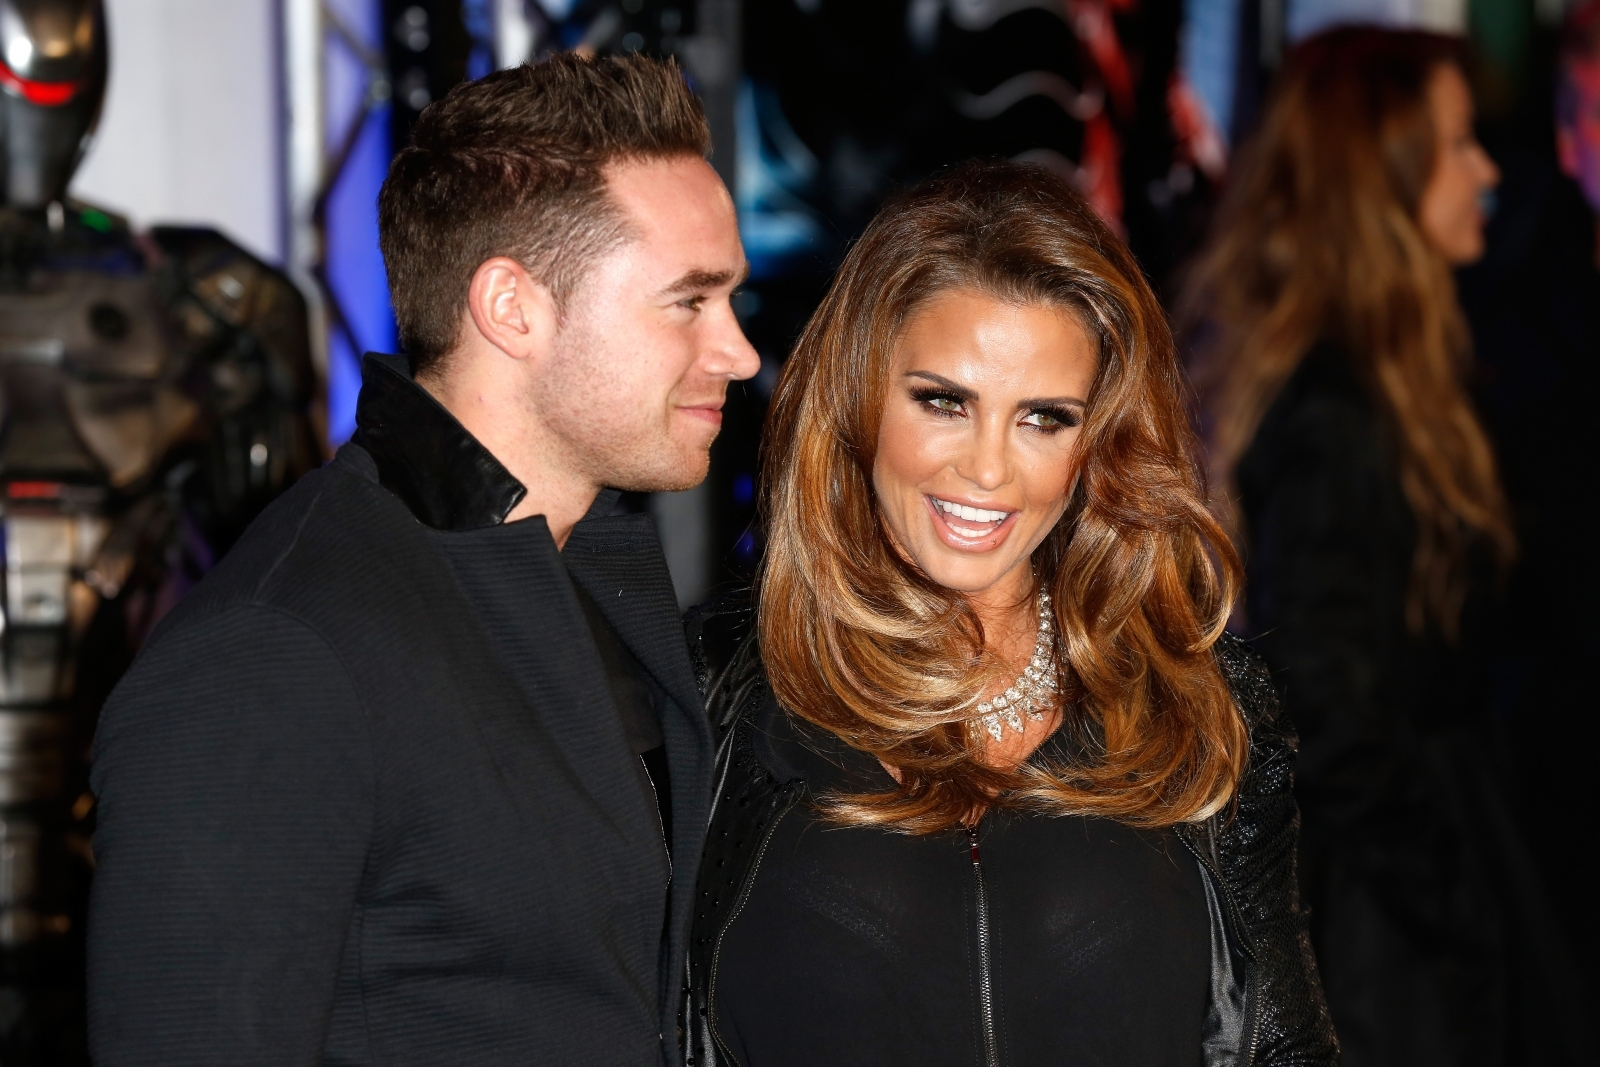 Katie Price has planned the ULTIMATE revenge for Kieran Hayler